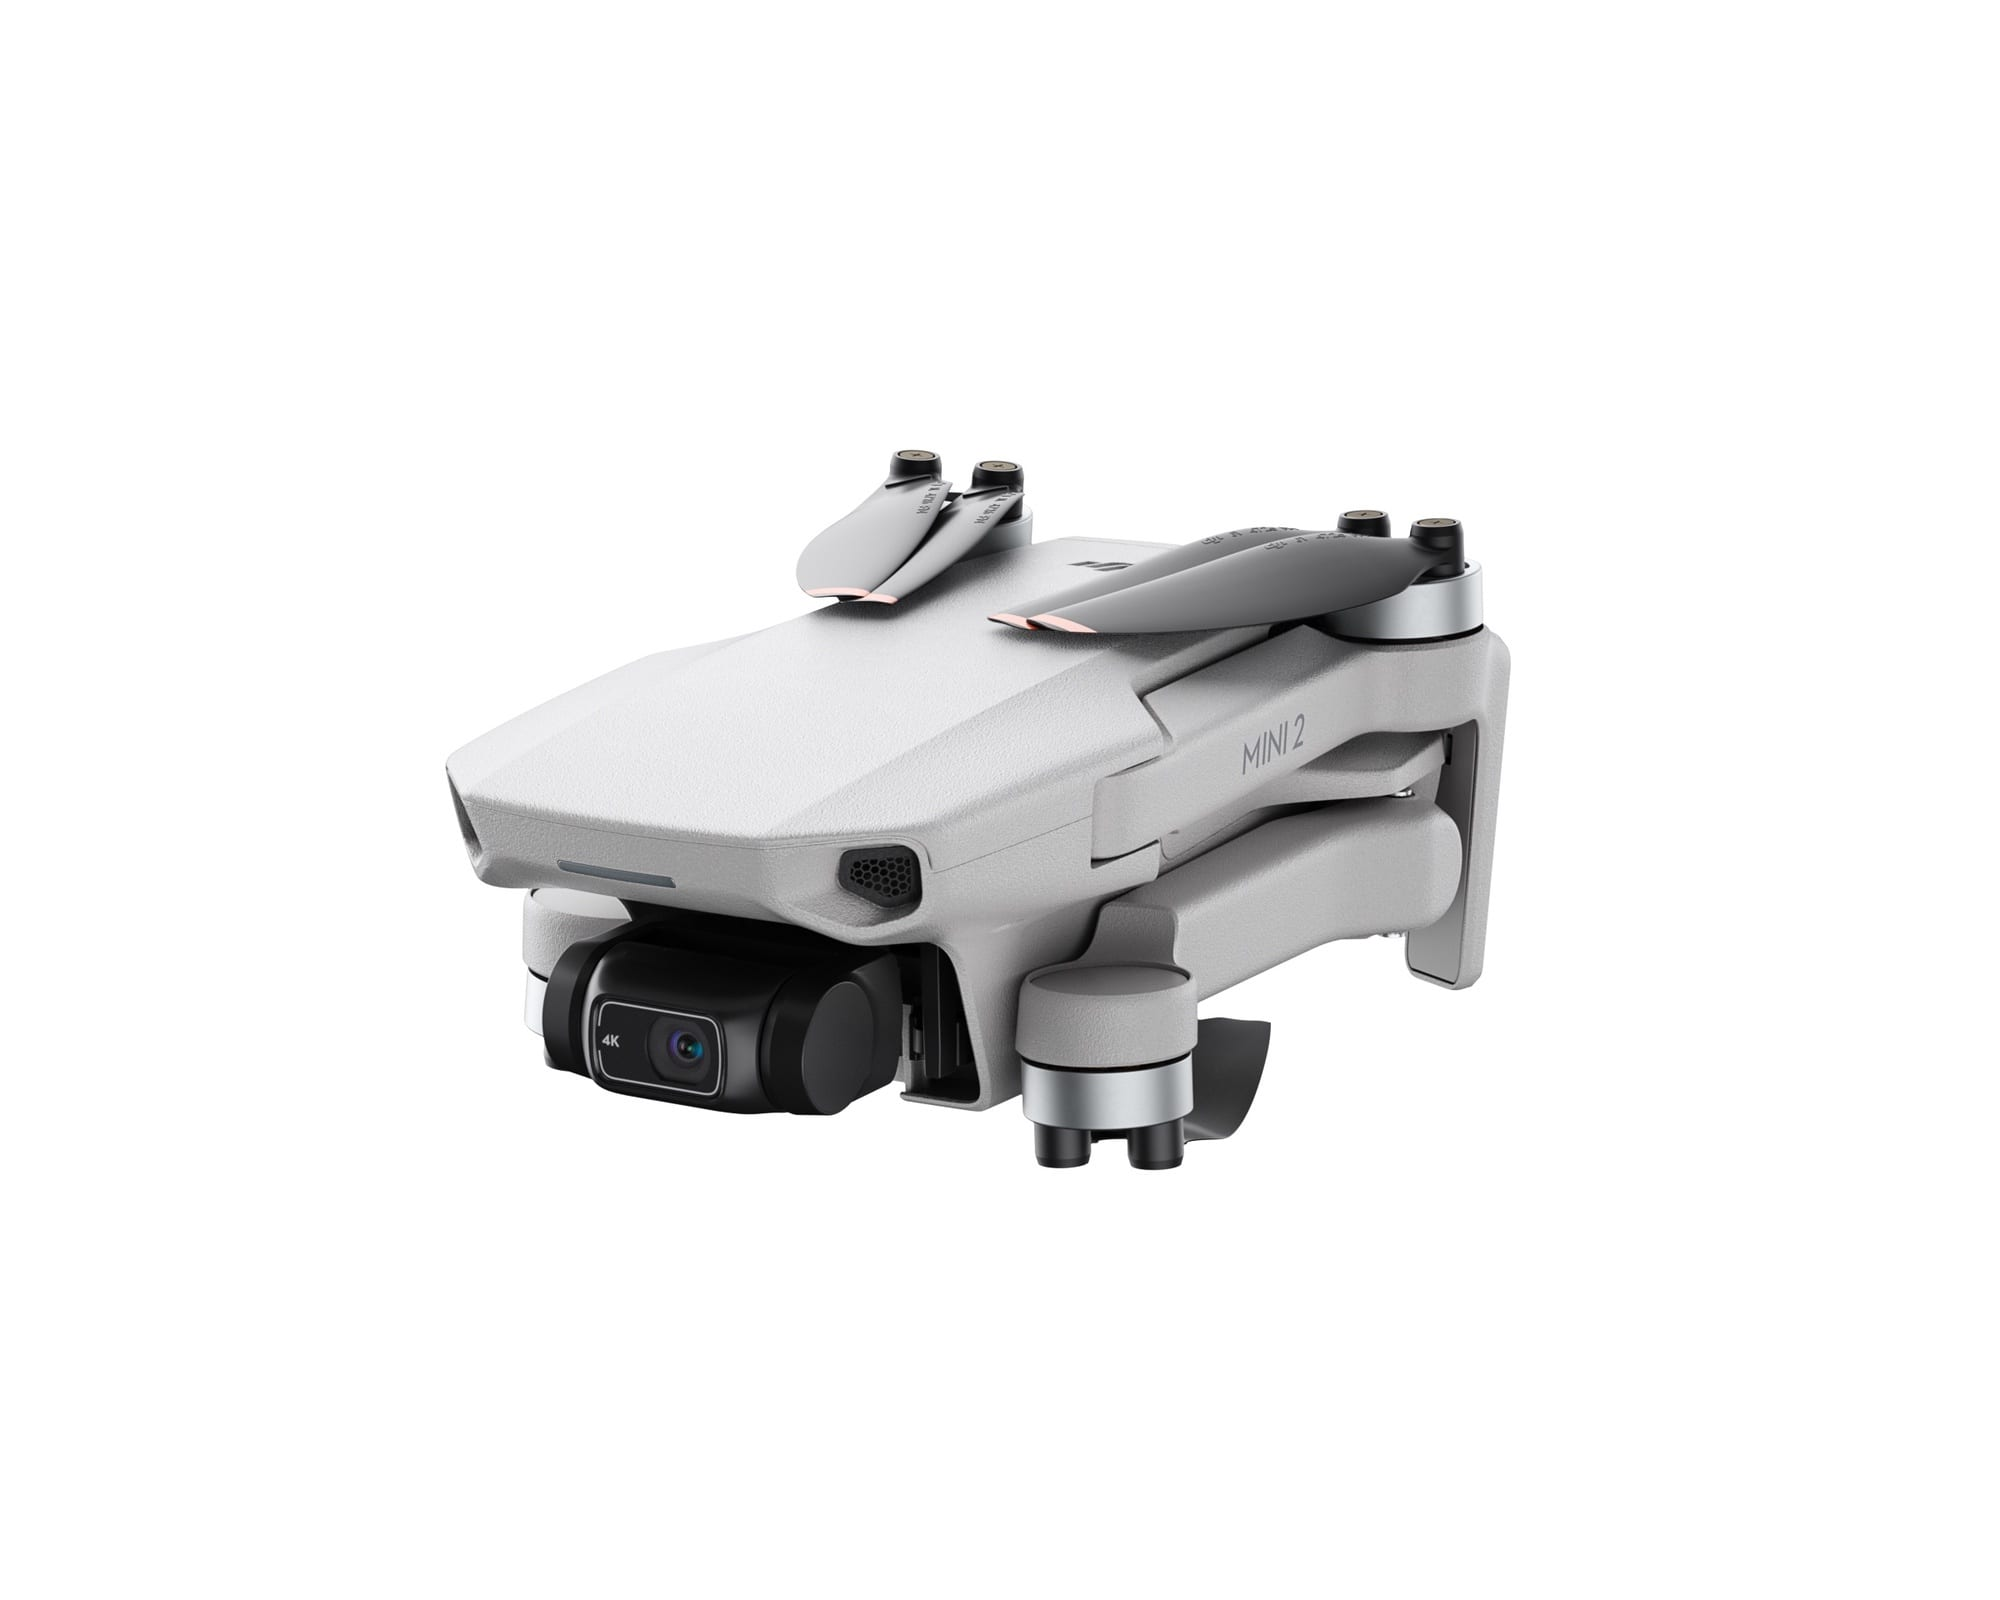 Mini 2 officially released by world's largest drone maker DJI